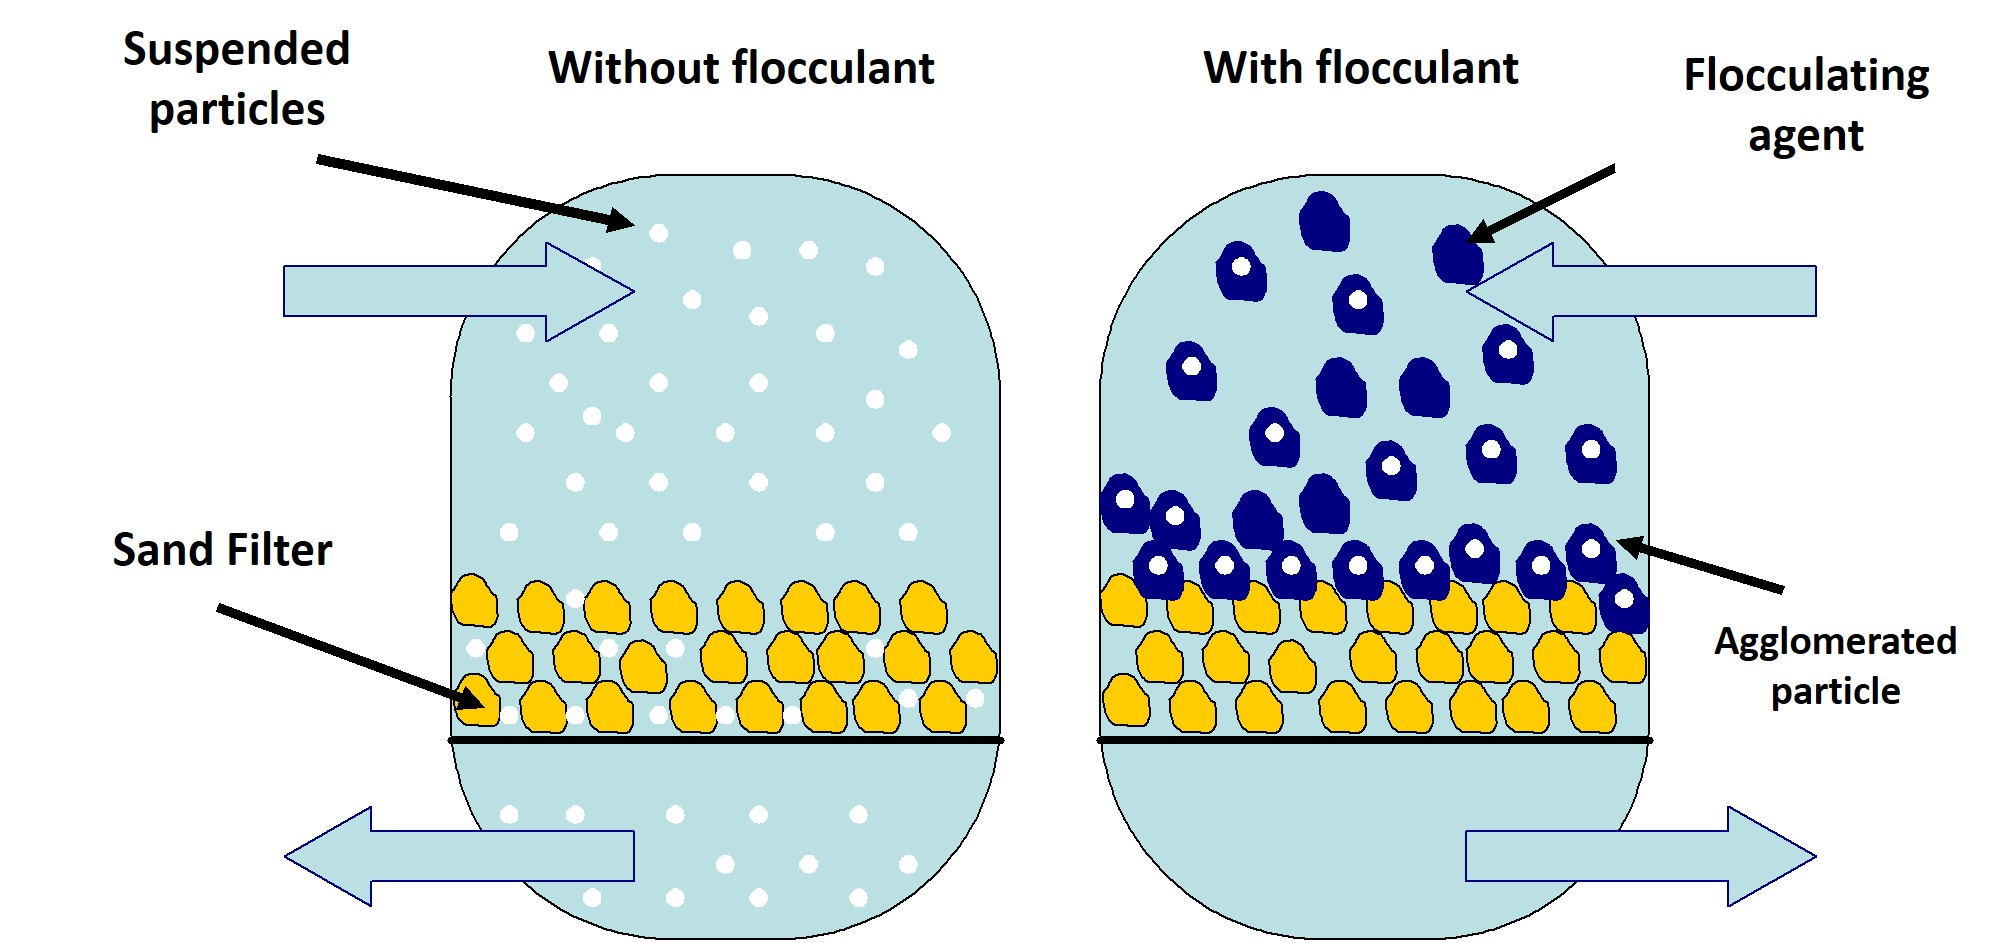 floculant Flocculation is the process in which colloids aggregate, or come together, to form larger particles called flocs by the addition of a chemical called a flocculant typical flocculants units include alum and ferrix, because they work well with high turbidity fluid mixtures.